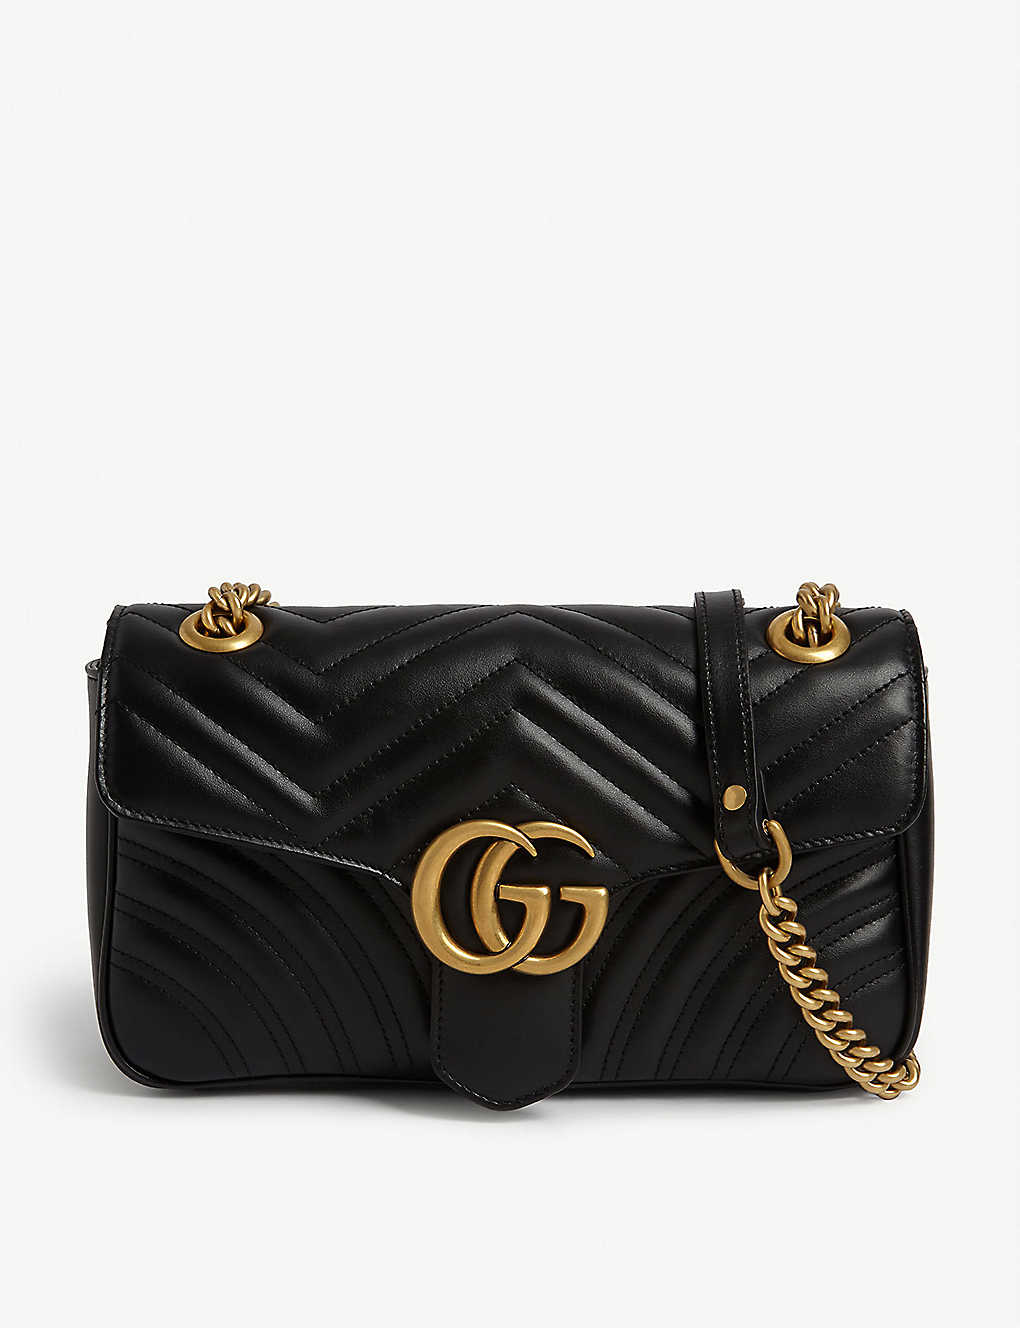 9f9bce240a3 GUCCI - Marmont leather shoulder bag